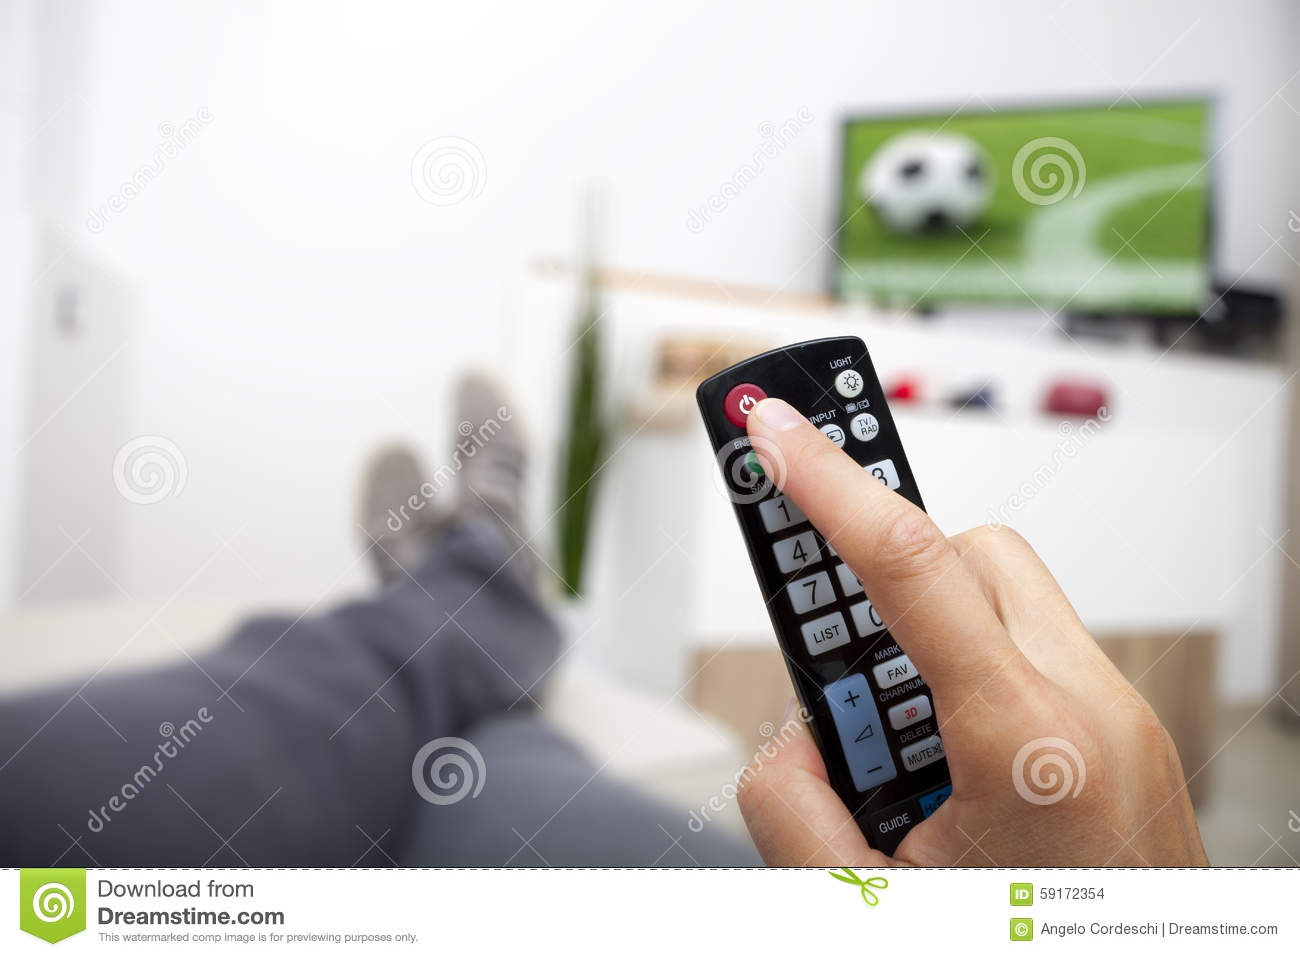 how to turn off xgimi remote